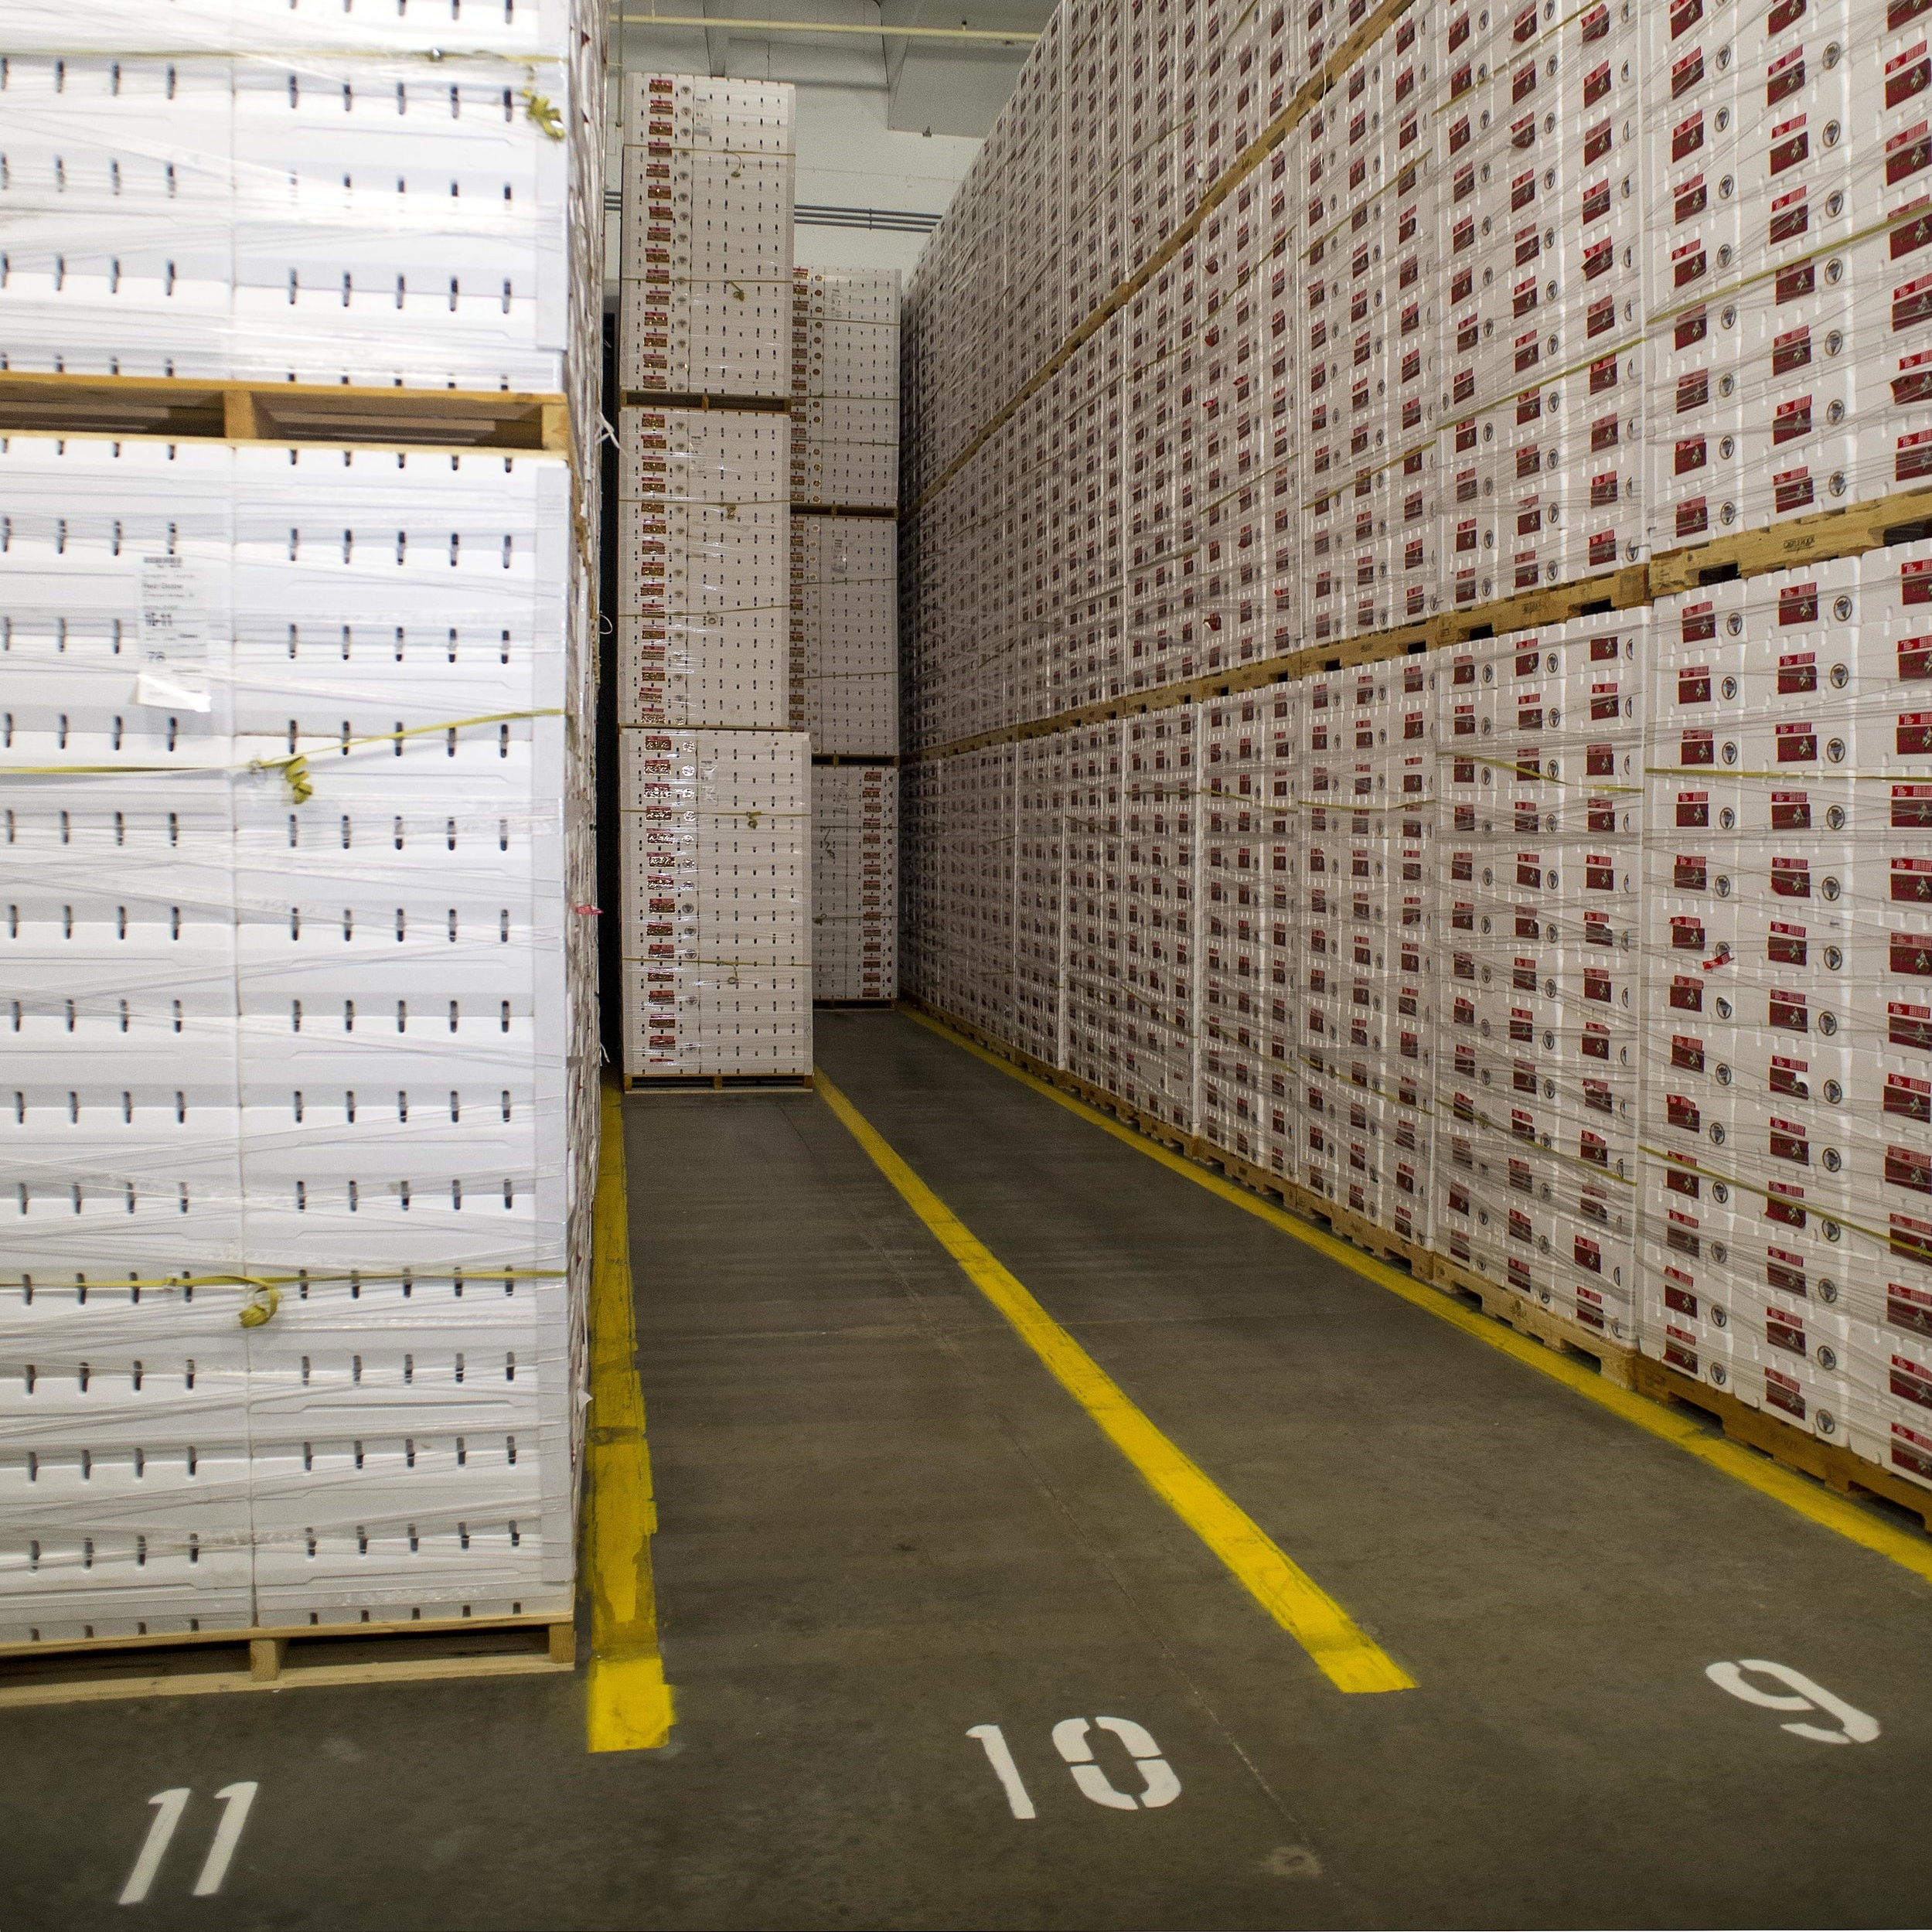 Maximize - » Interior storage space due to long span qualities of engineered concrete» Resistance of your wall surfaces to forklift damage» Ability to maintain a gas tight environment for SO2 gassing» Food safety compliance» Humidity consistency within interior spaces